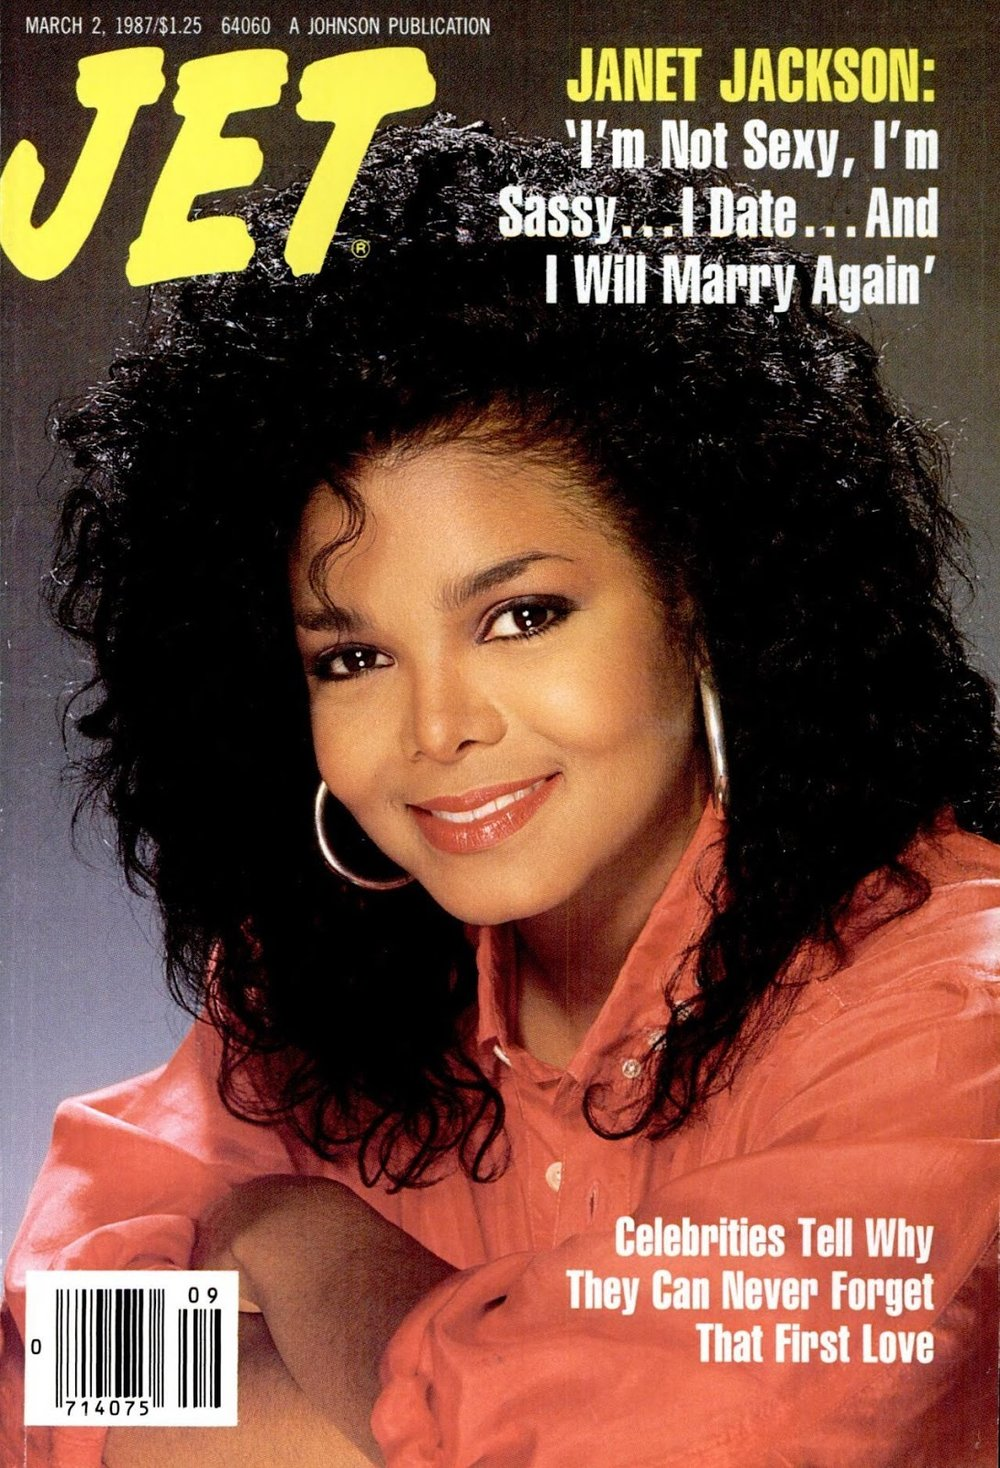 janet jackson jet magazine march 1987 1.jpg